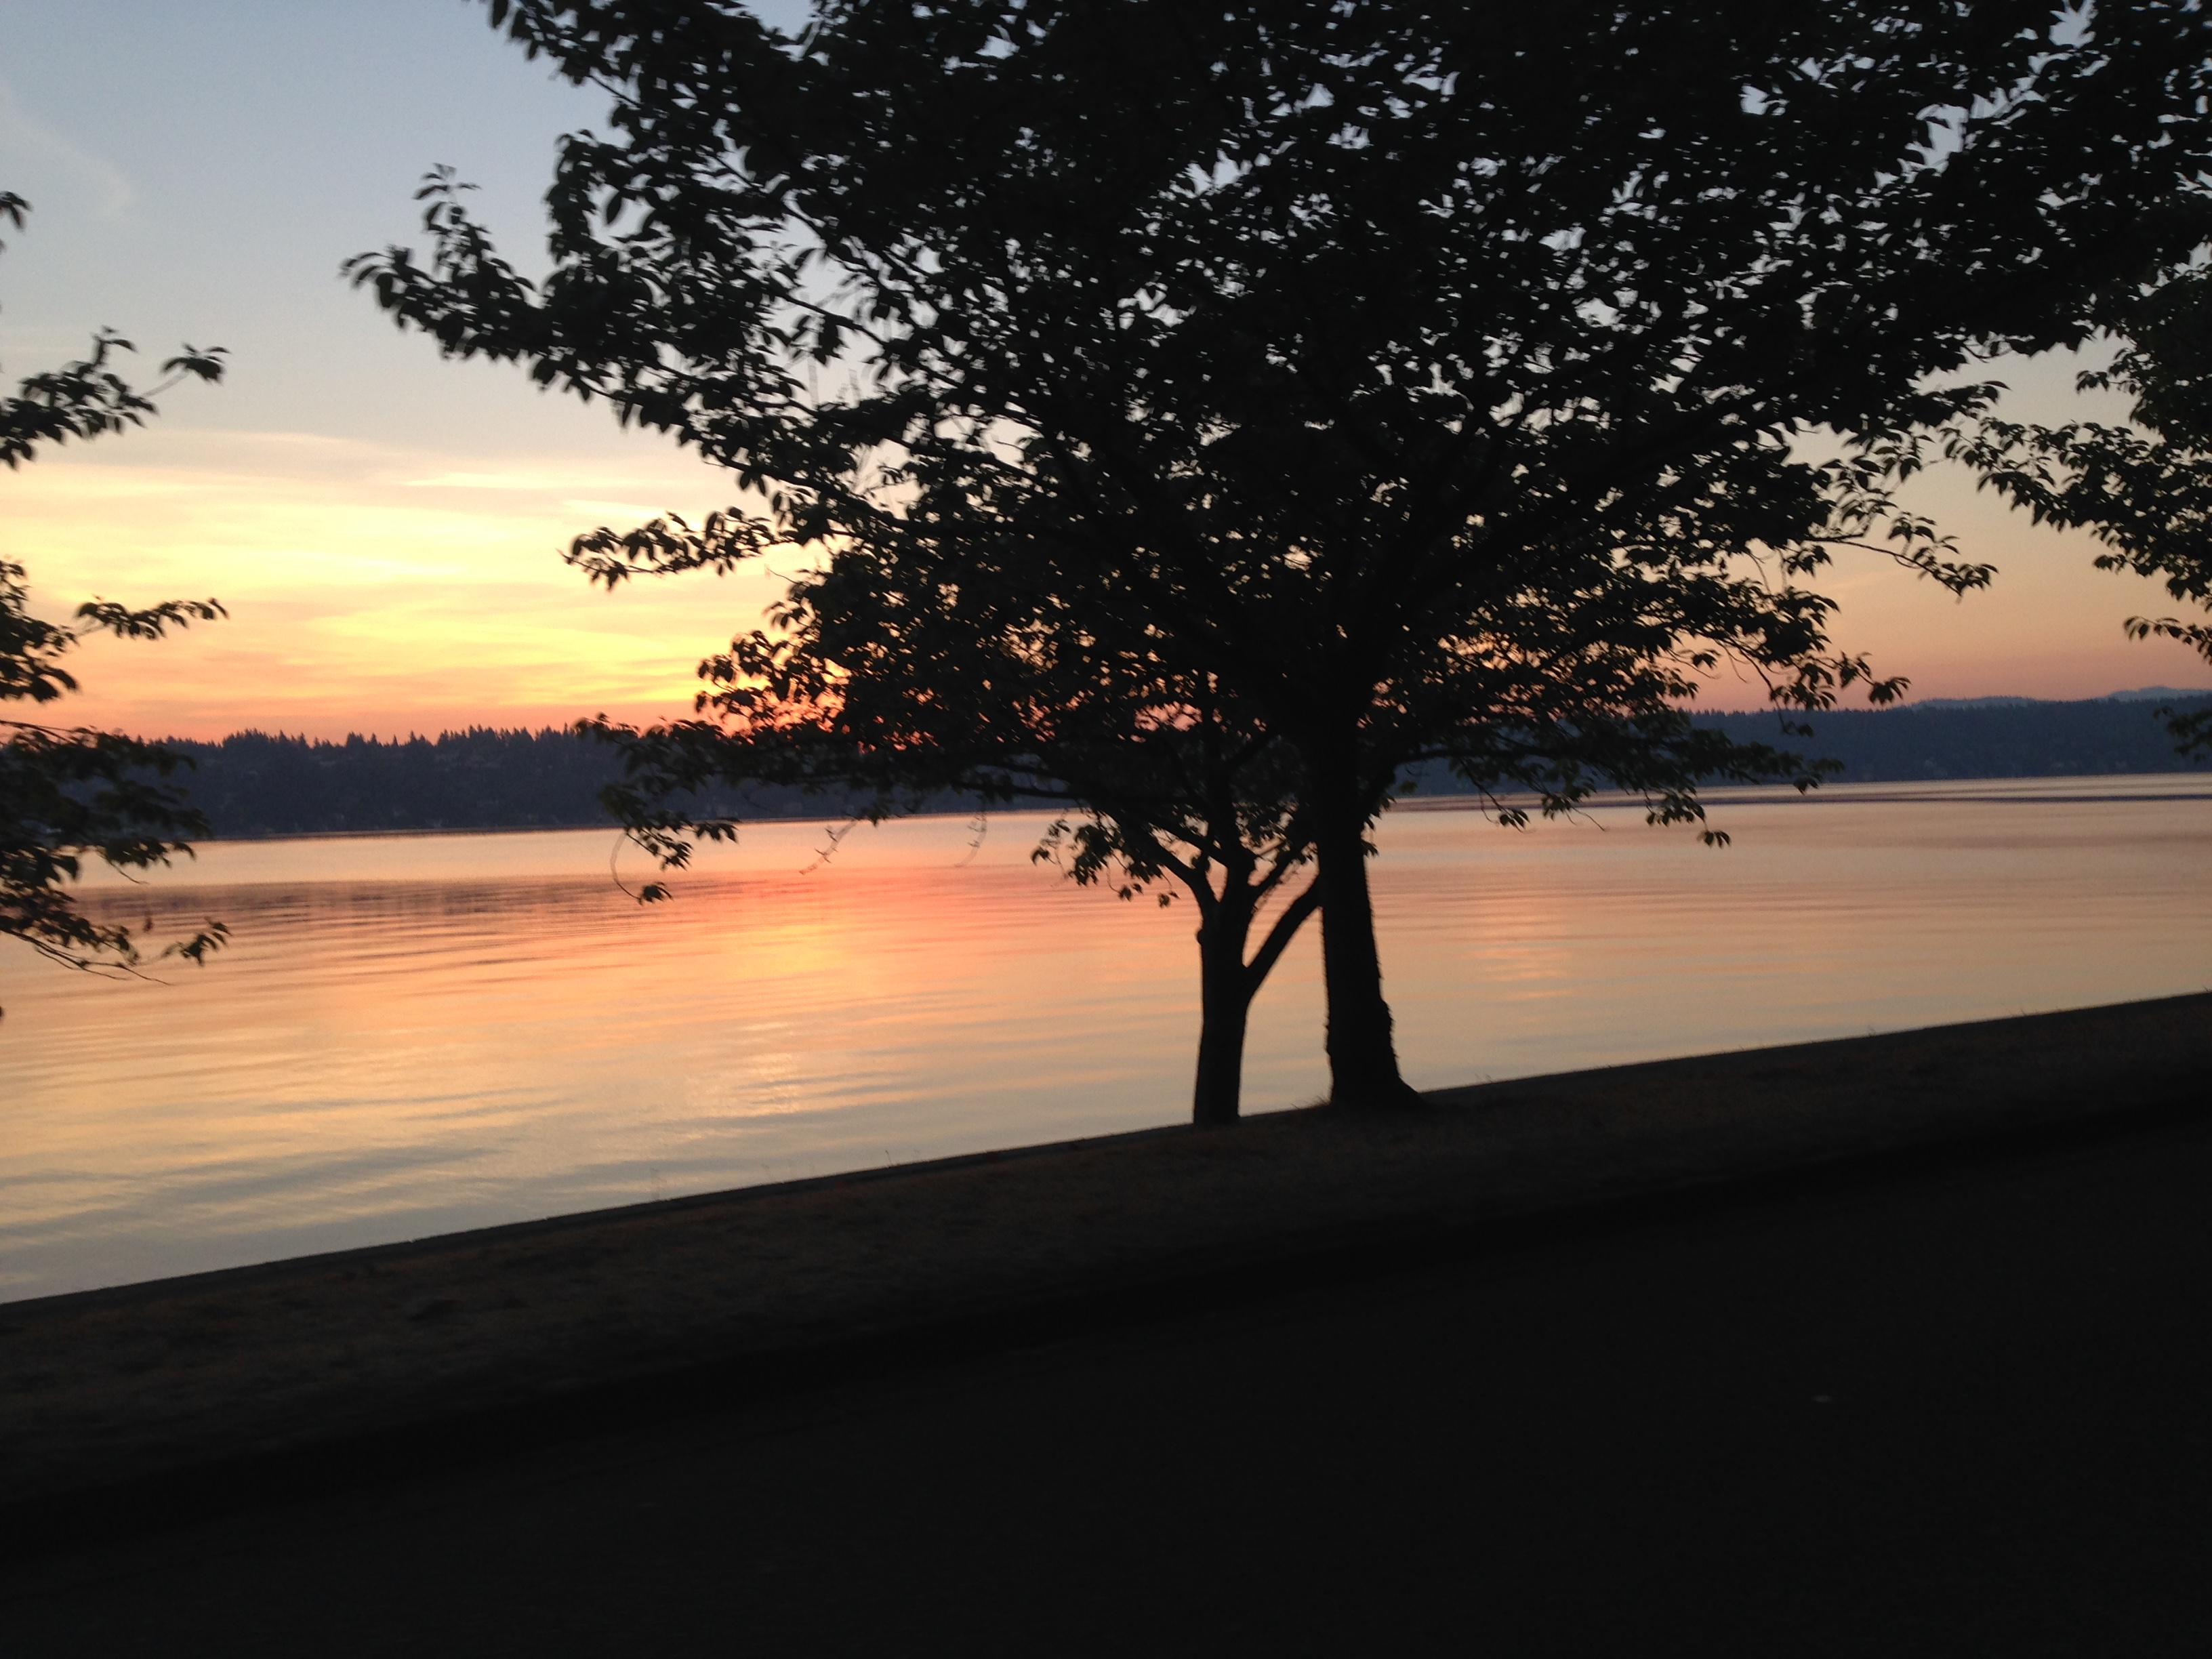 Sunrise over Lake Washington. Photo by Steve Frey.